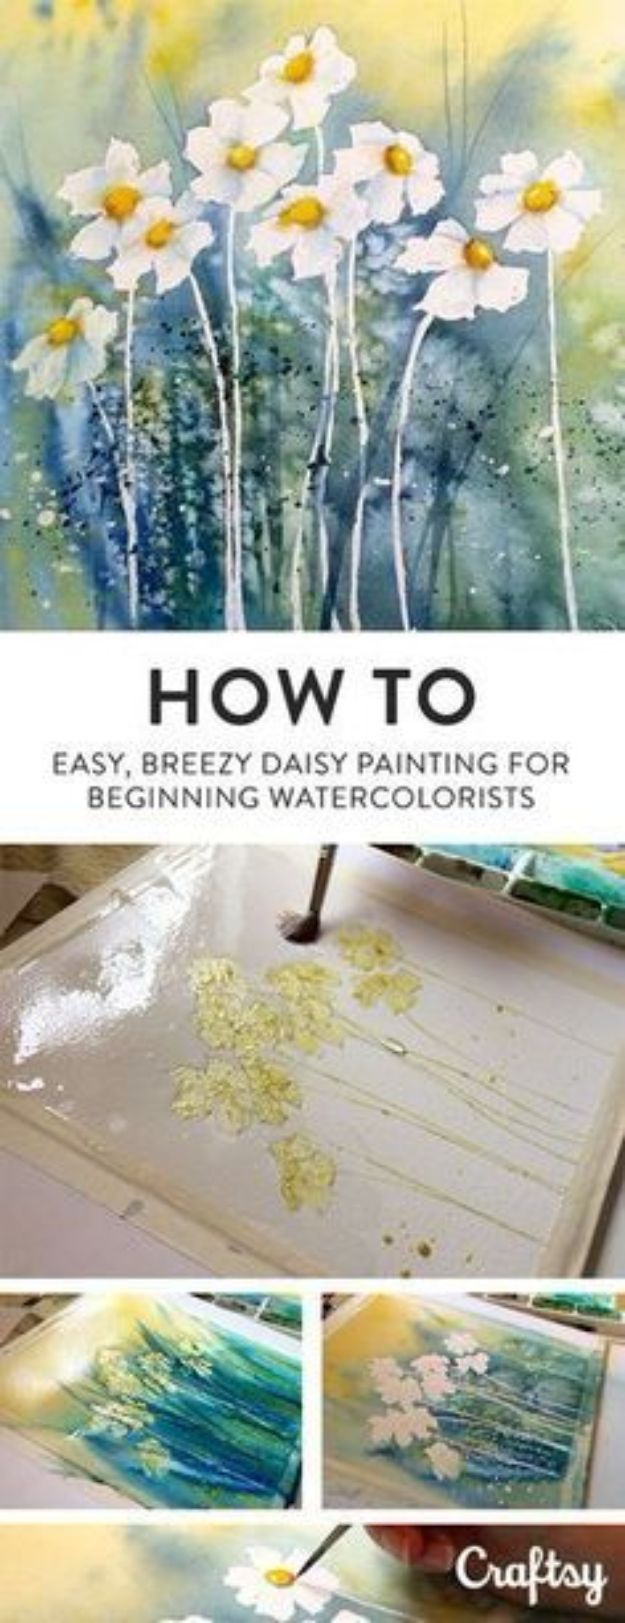 Watercolor Tutorials and Techniques - How To Paint A Daisy In Watercolor - How To Paint With Watercolor - Make Watercolor Flowers, Ocean, Sky, Abstract People, Landscapes, Buildings, Animals, Portraits, Sunset - Step by Step Art Lessons for Beginners - Easy Video Tutorials and How To for Watercolors and Paint Washes #art